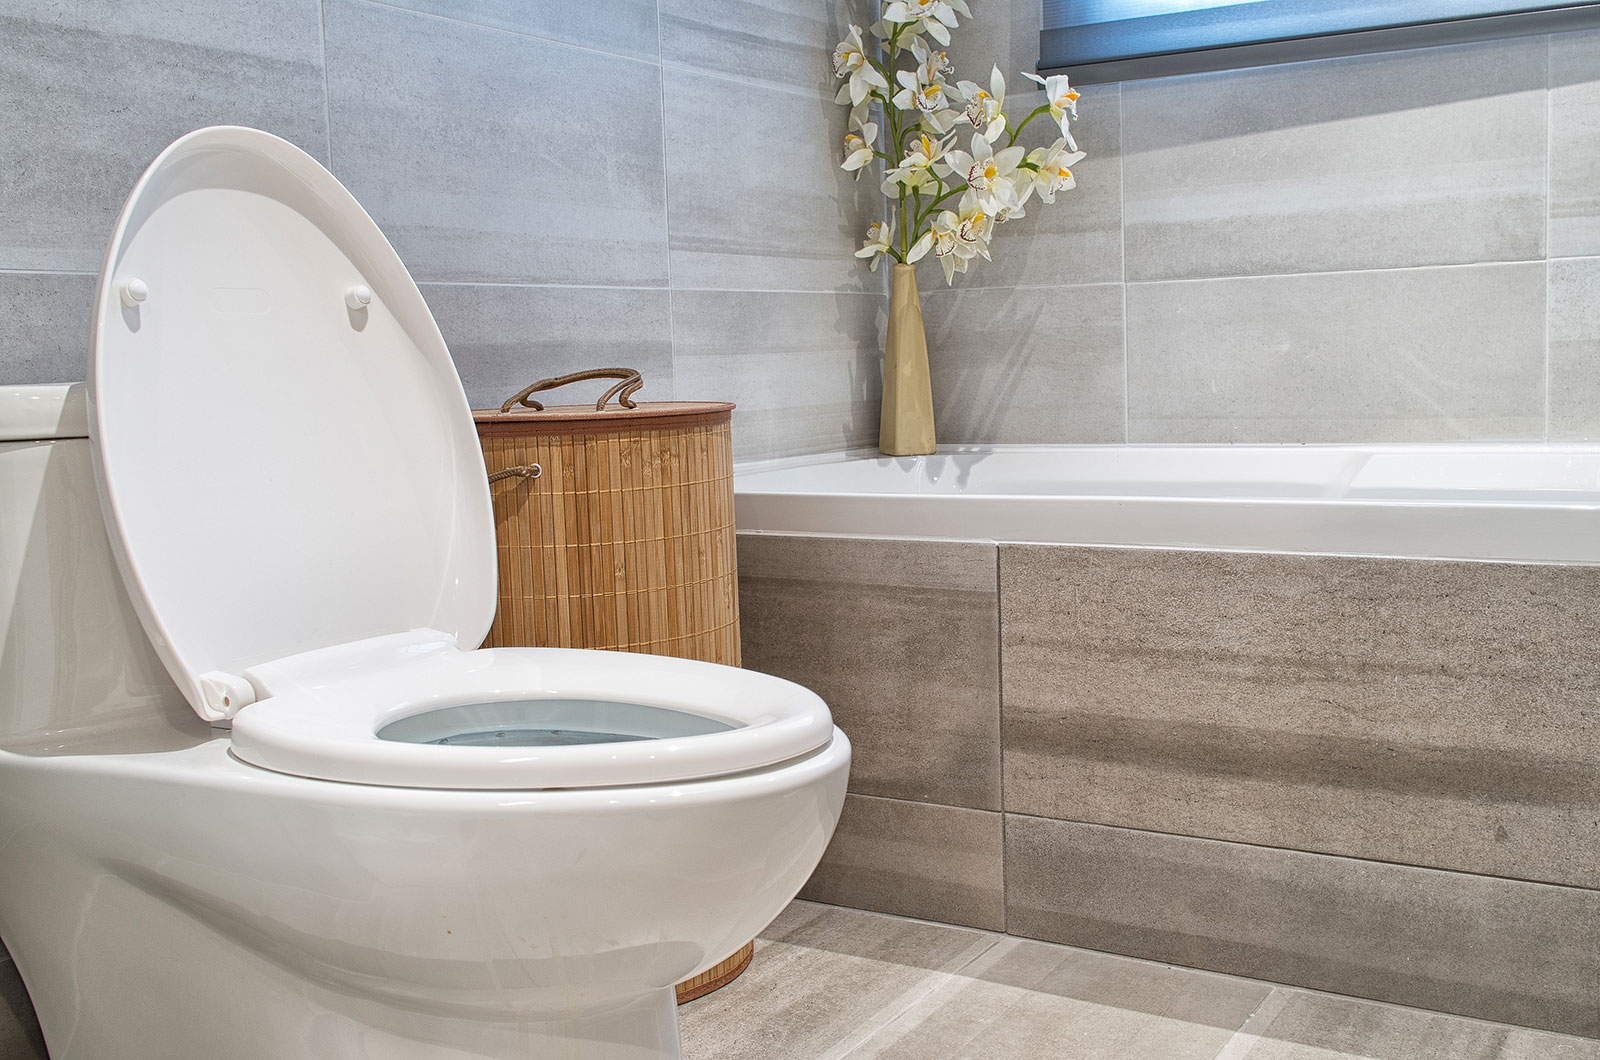 A Modern Bathroom Toilet and Bathtub